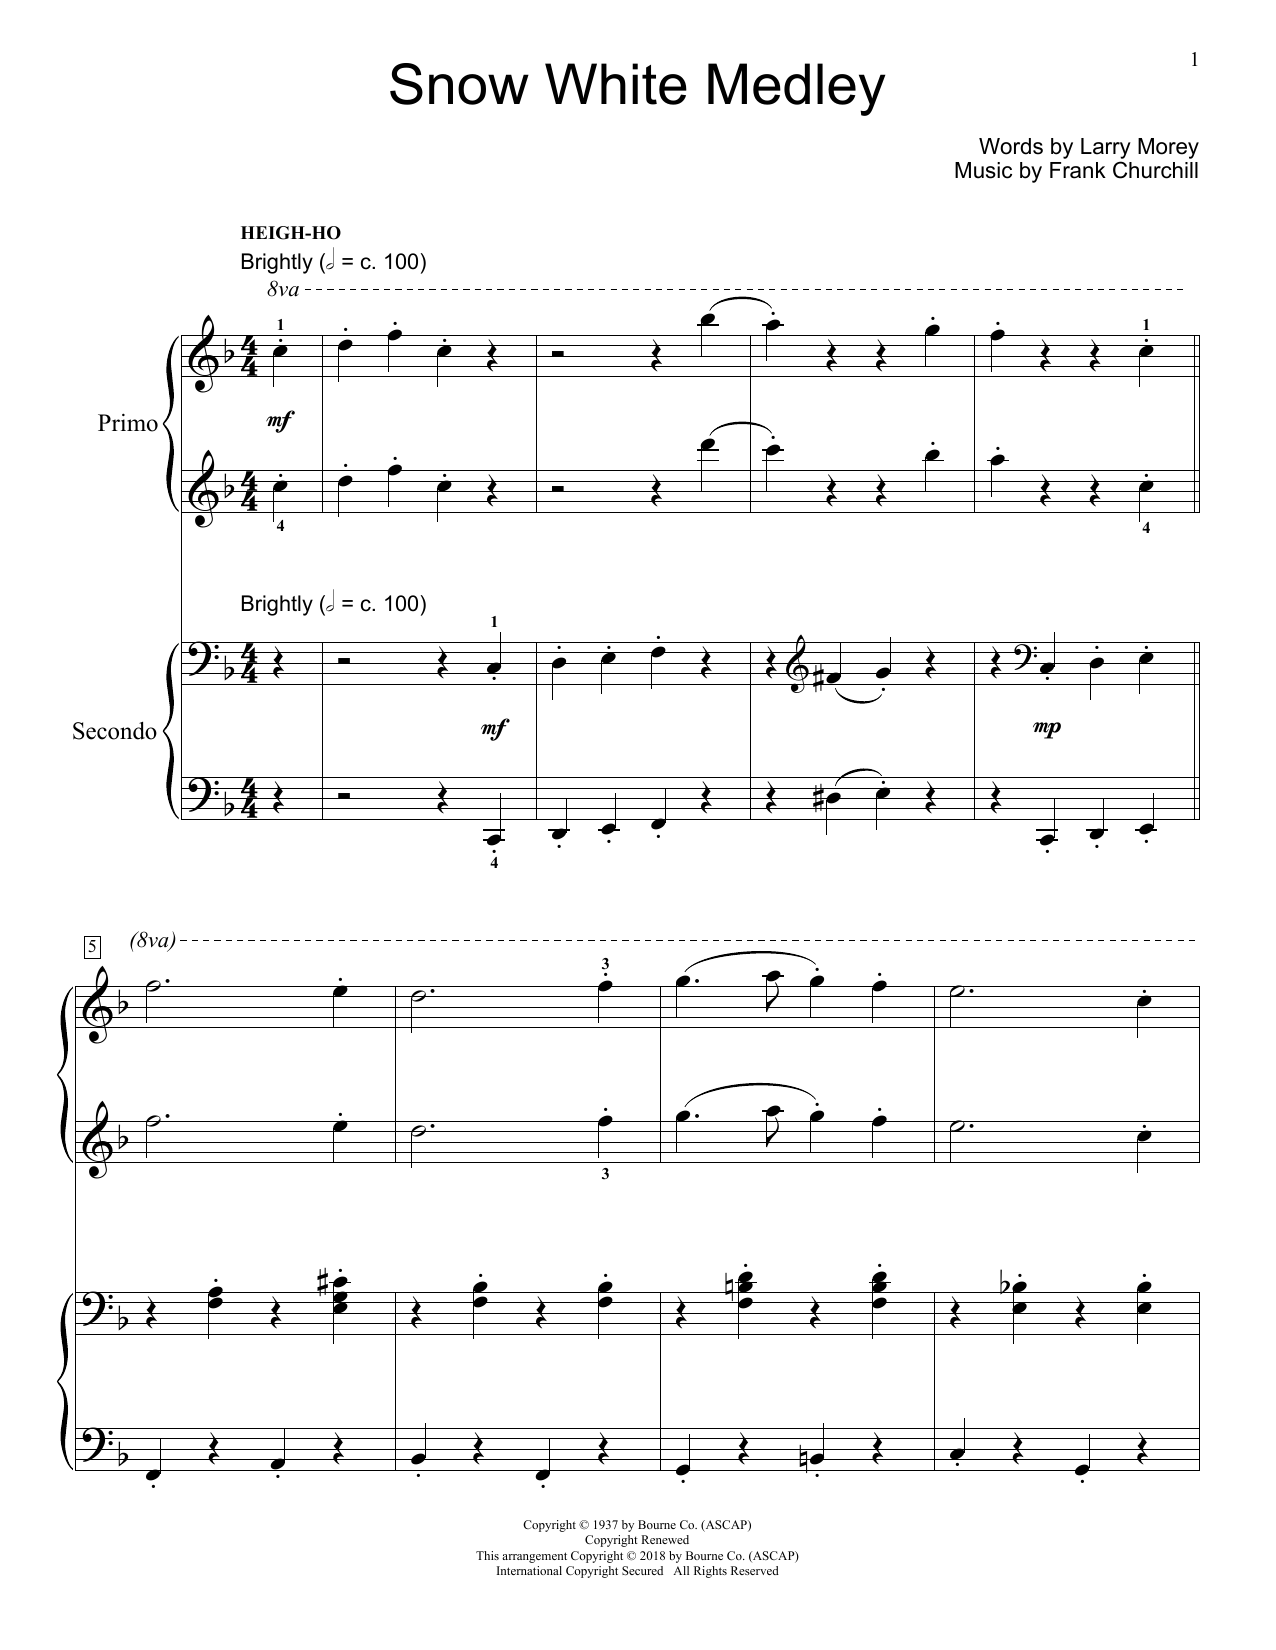 Snow White Medley Sheet Music